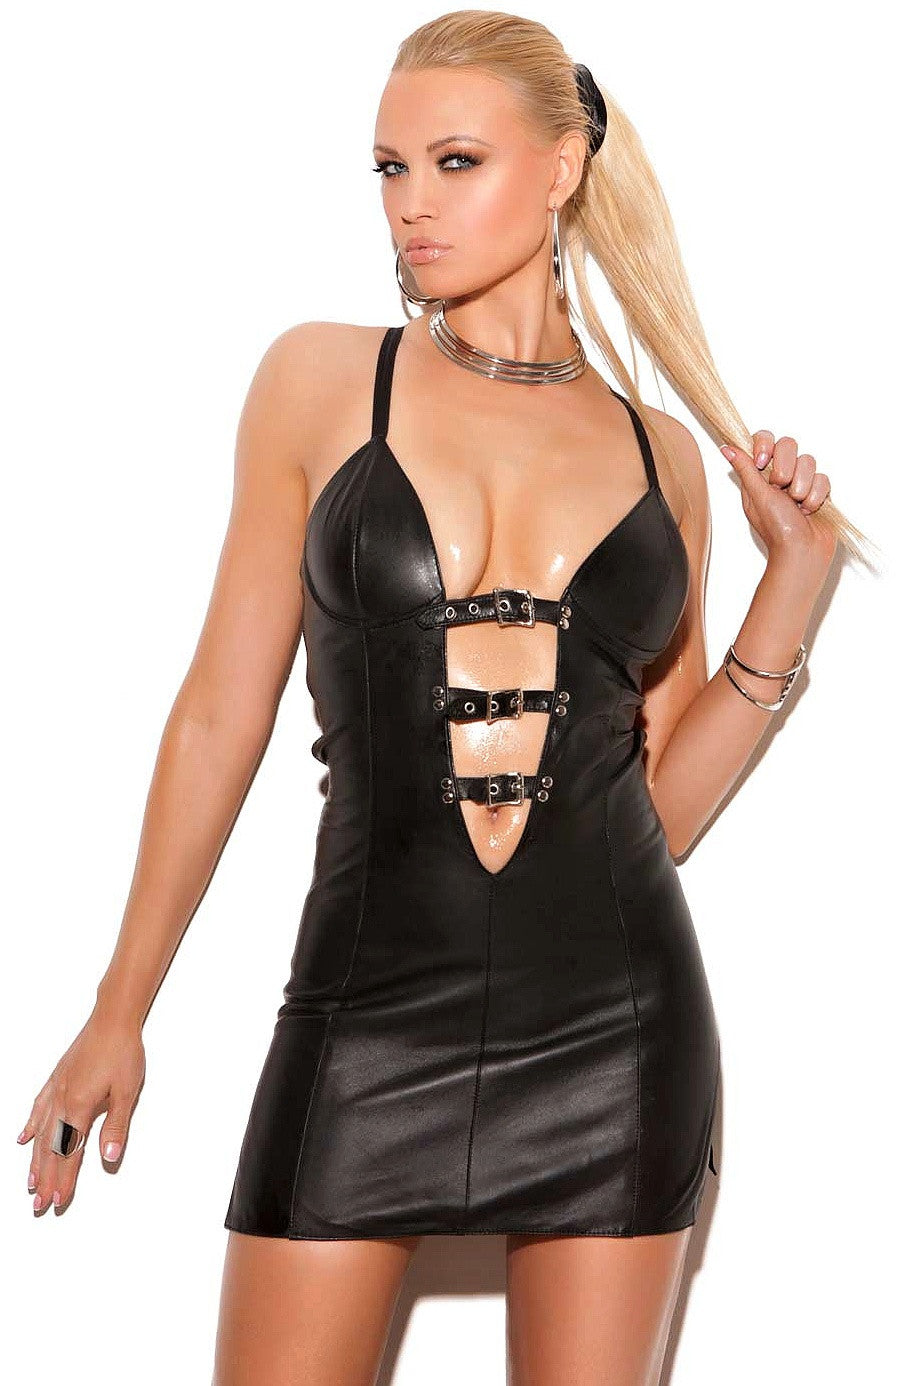 L8125 Leather mini dress - Sexylingerieland  - 1